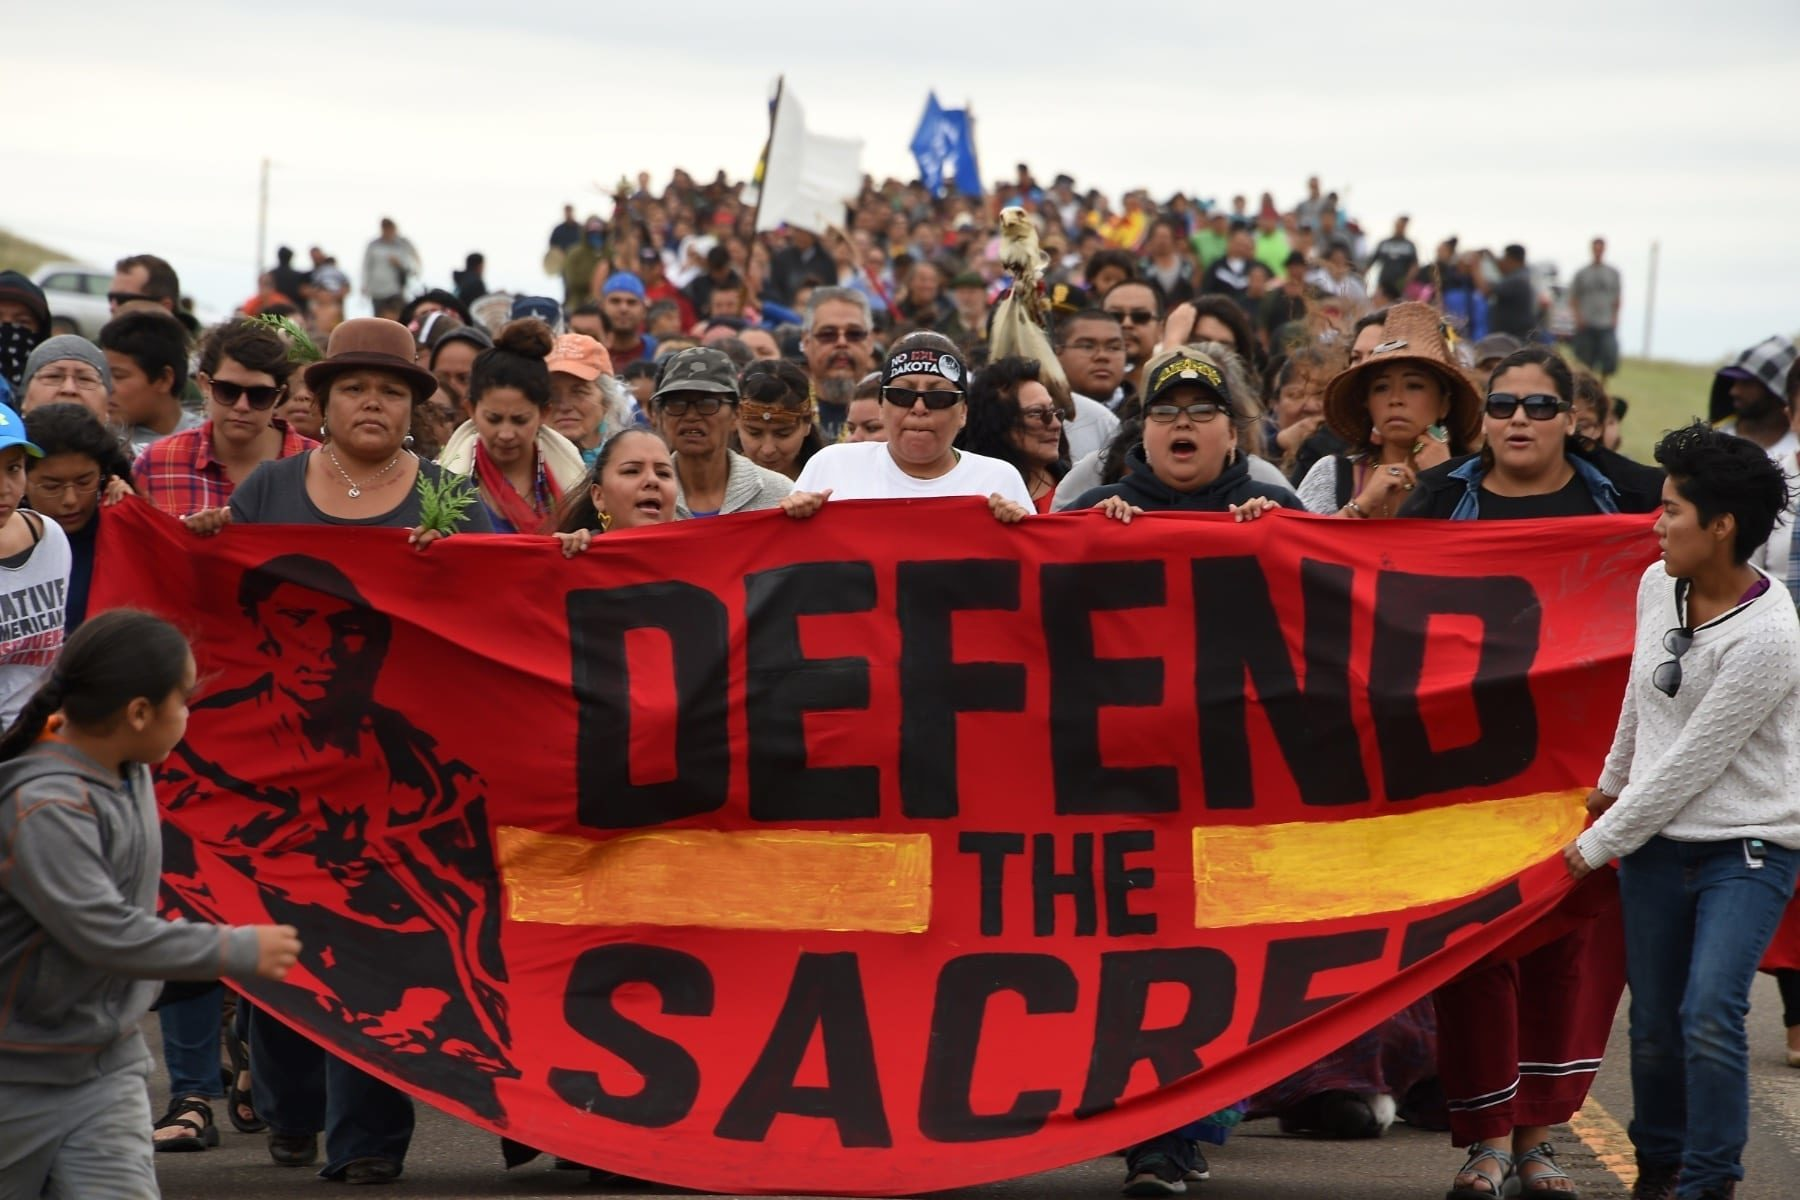 A group of Native American protesters marching with a sign that says